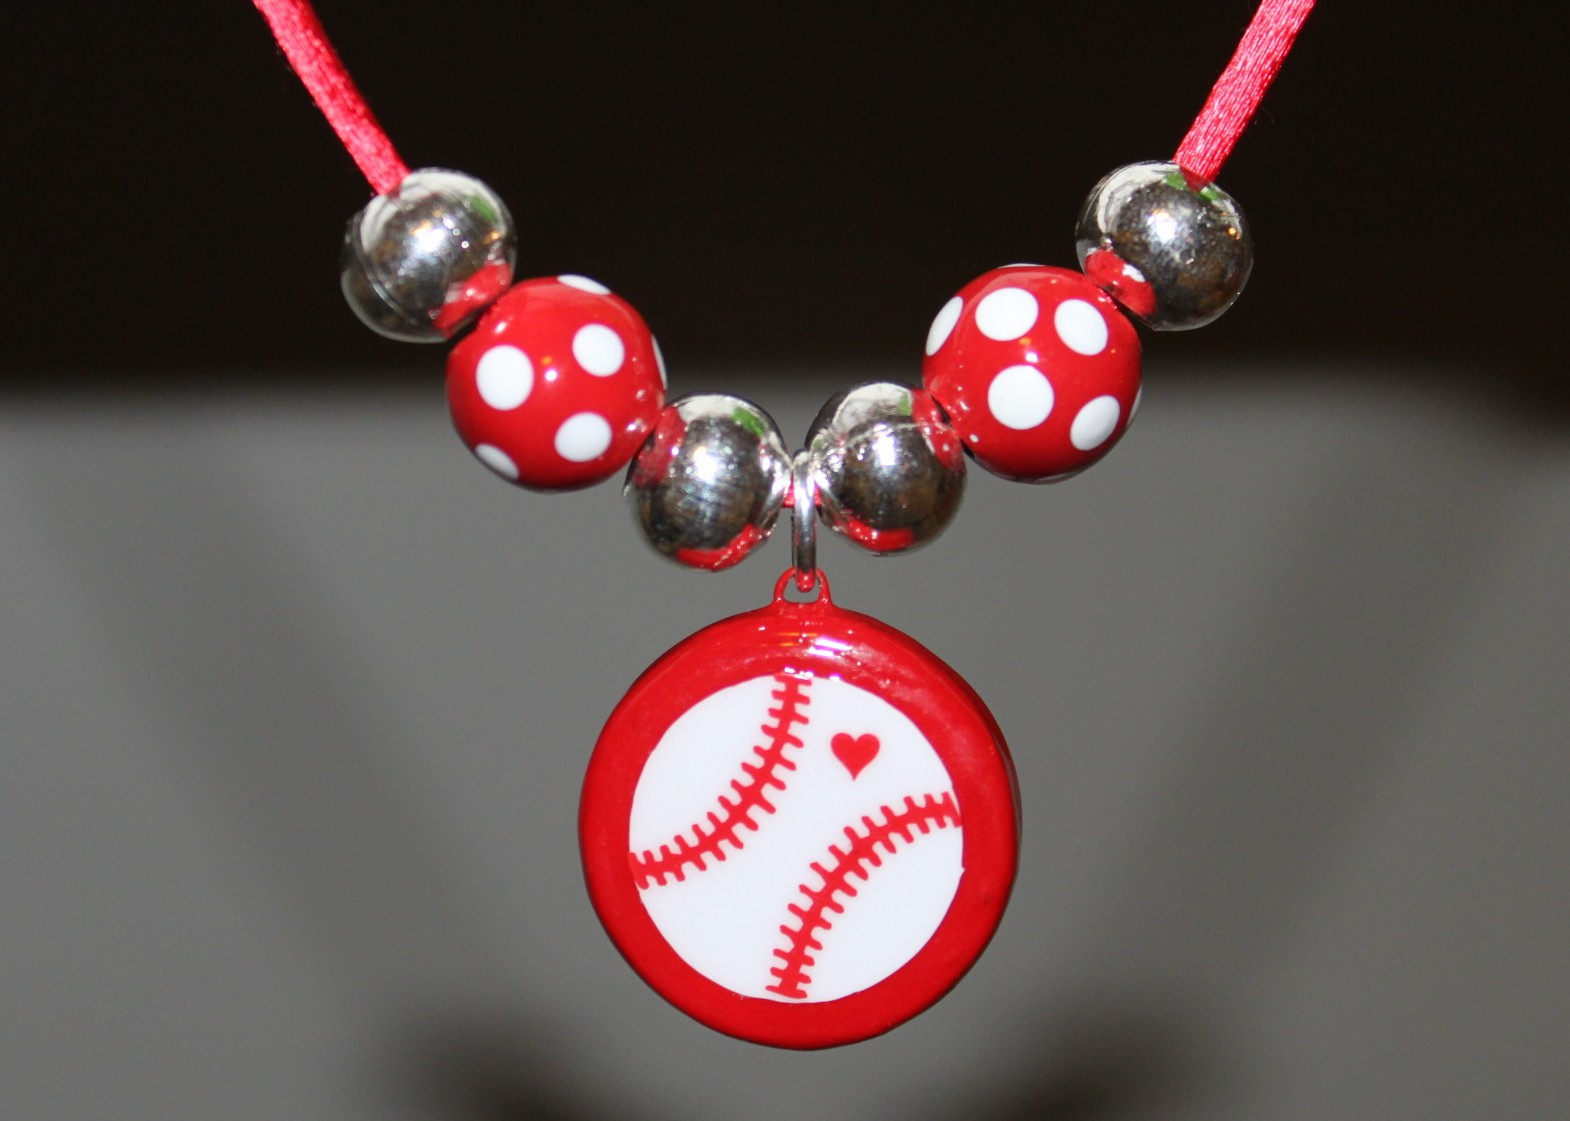 Red Porcelain Baseball Necklace with Polka Dot Beads